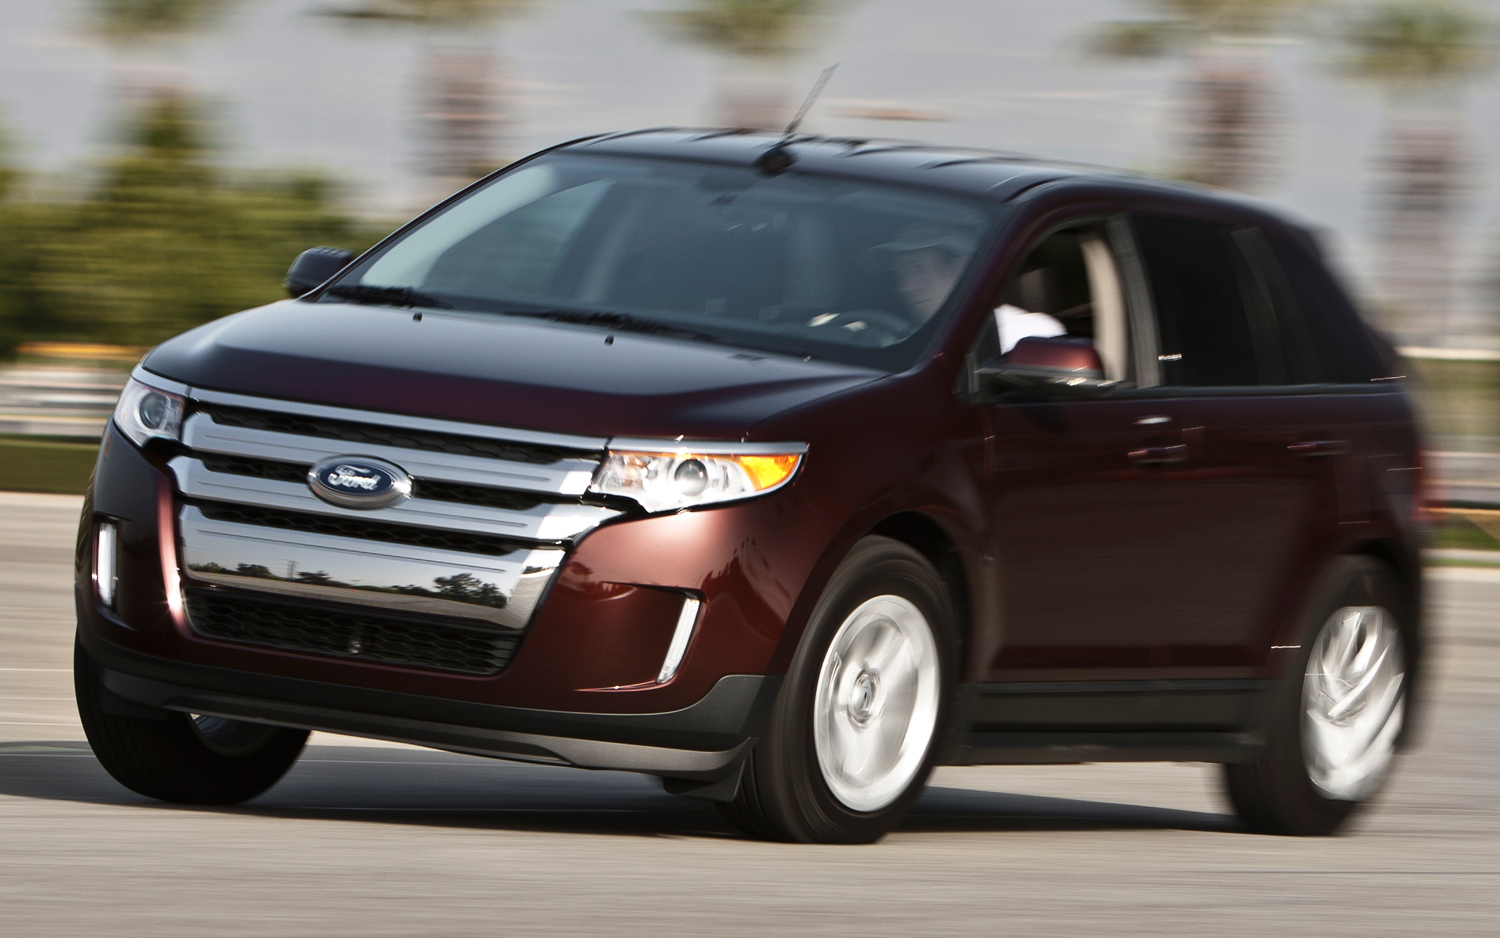 2012 ford edge image 21